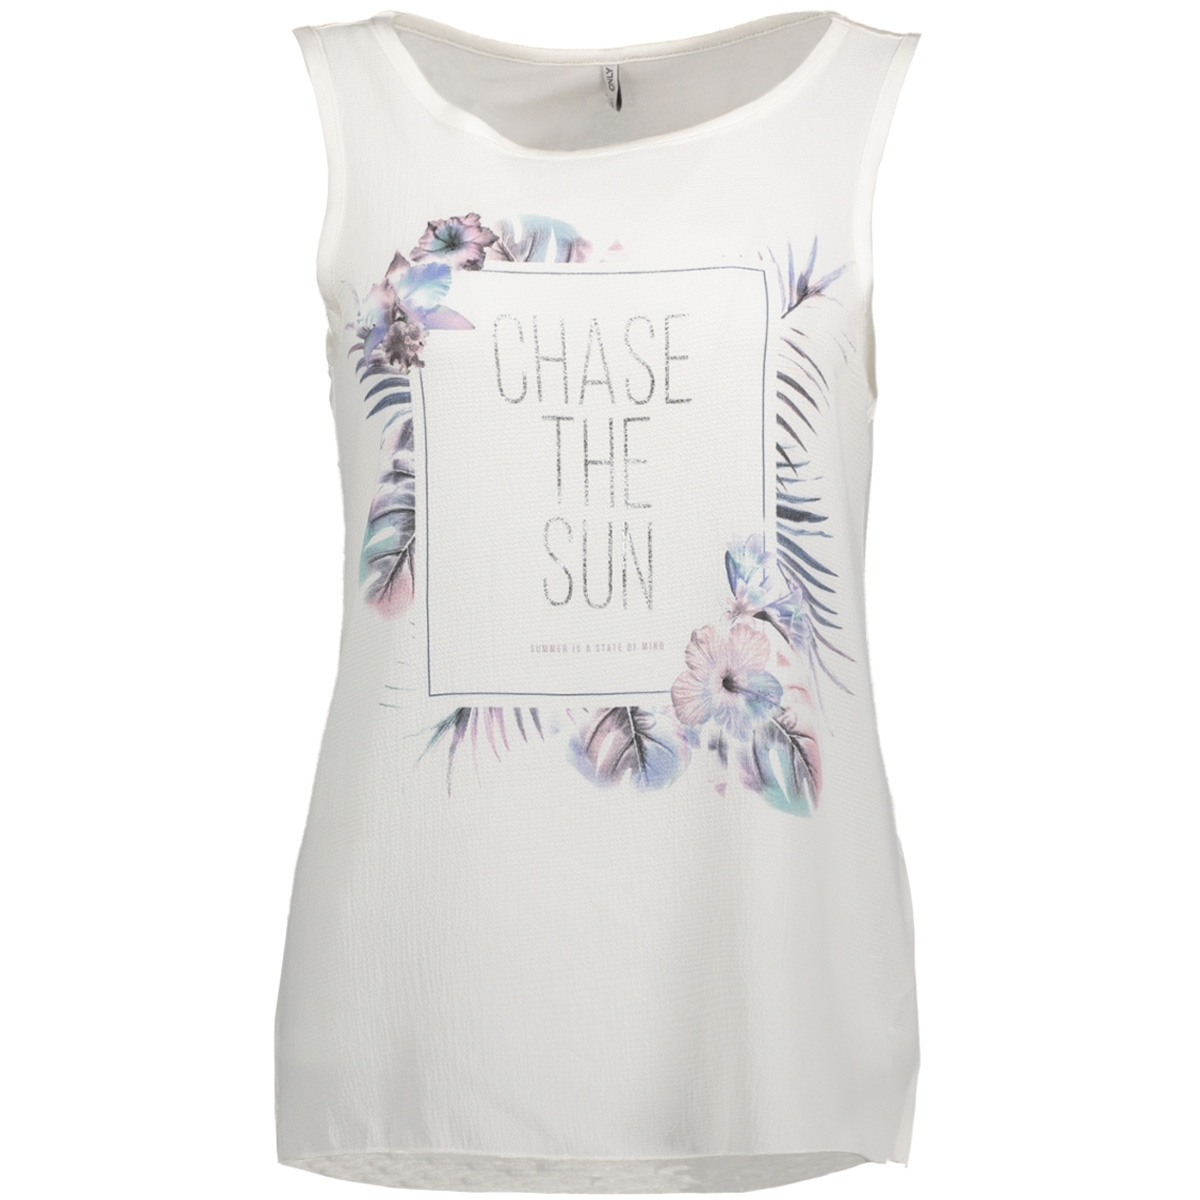 onlprim s/l amour/chase top box ess 15138270 only top cloud dancer/chase